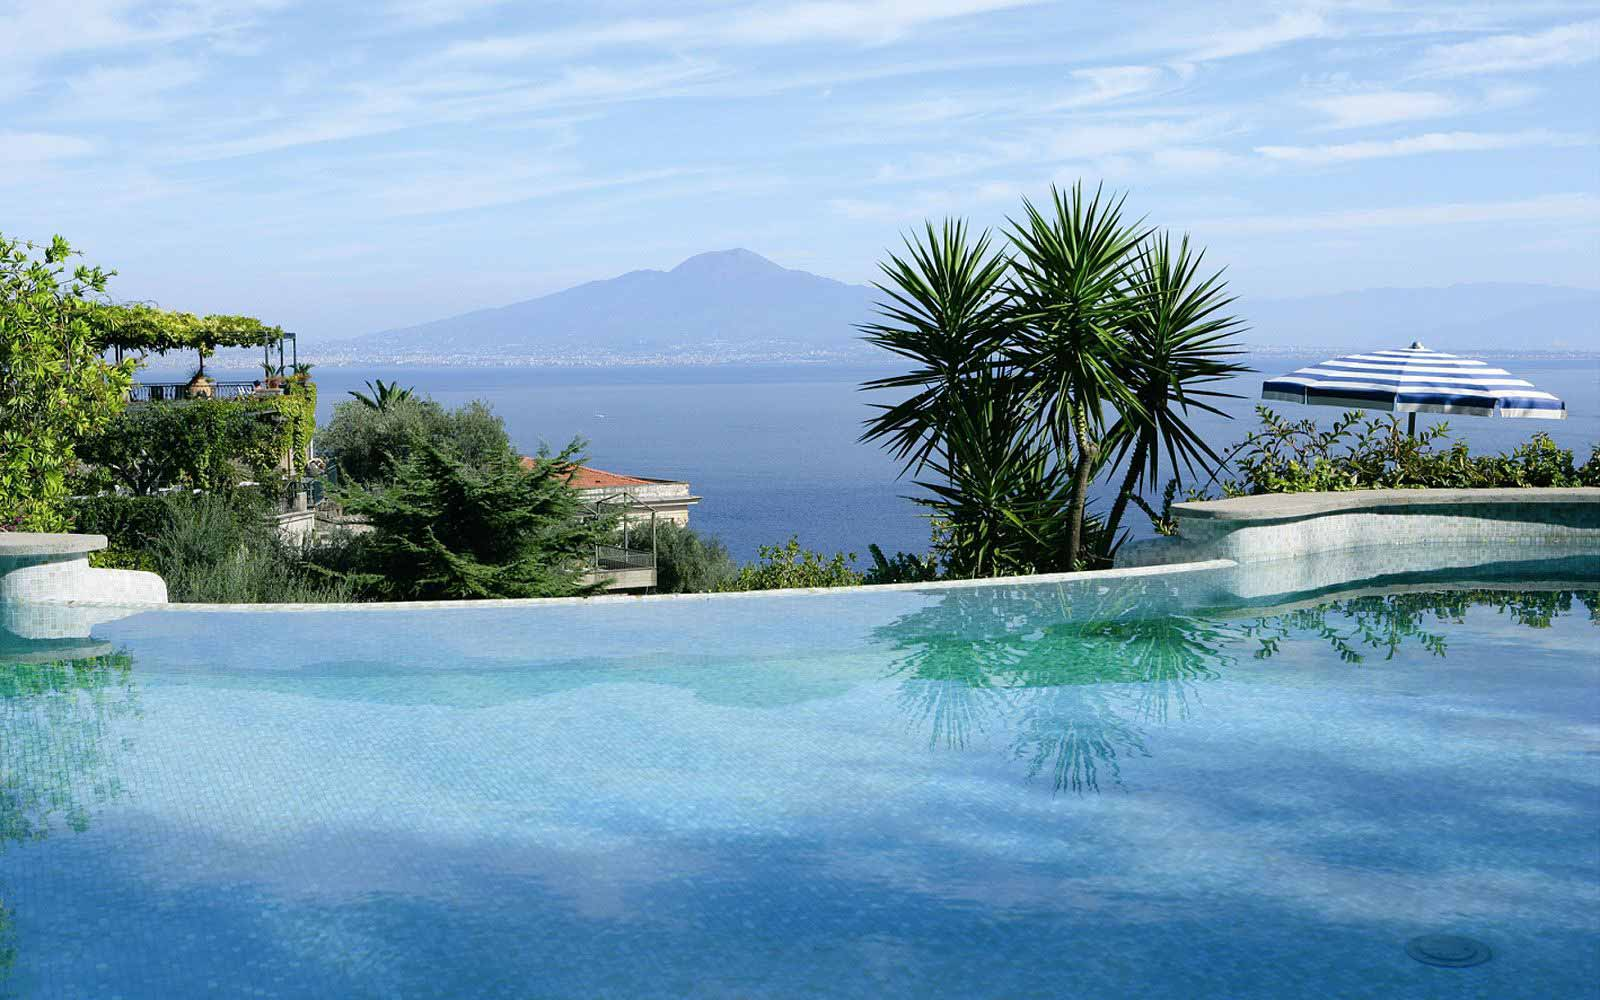 Swimming pool at Grand Hotel Capodimonte with views of Mount Vesuvius